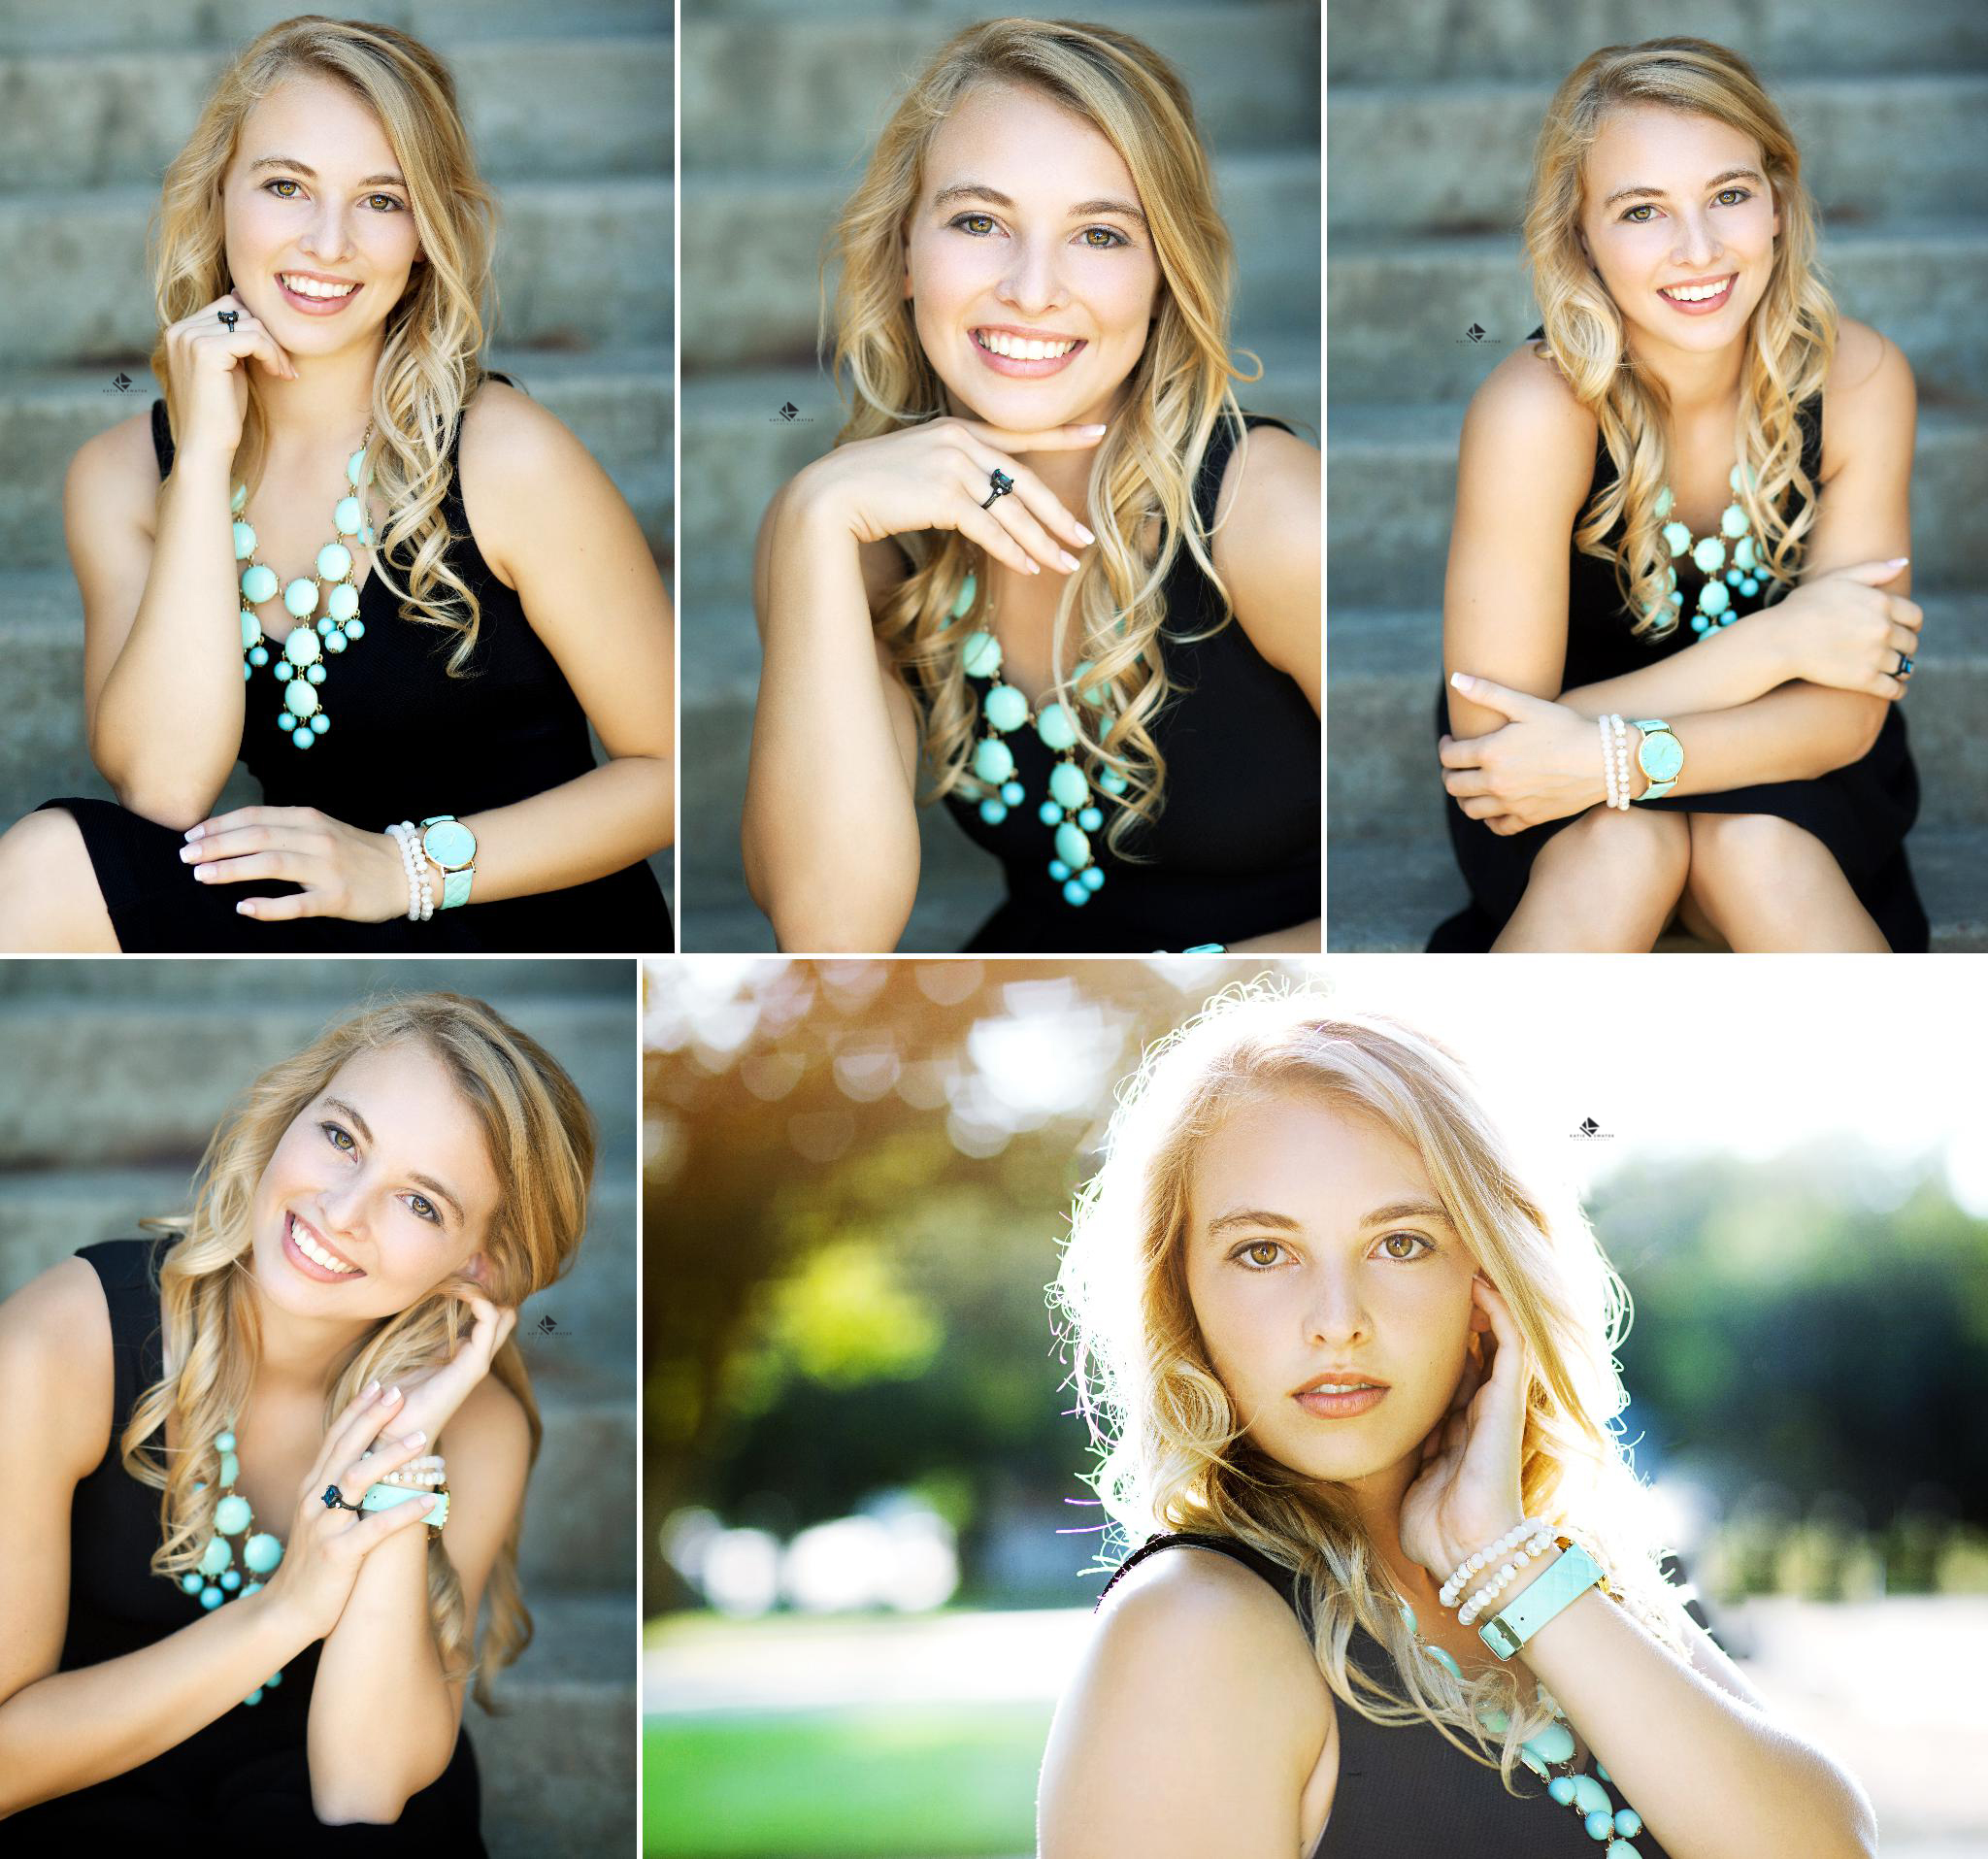 Class Ring Senior Images by Katie Swatek Photography | Urban Senior Images by Katie Swatek Photography